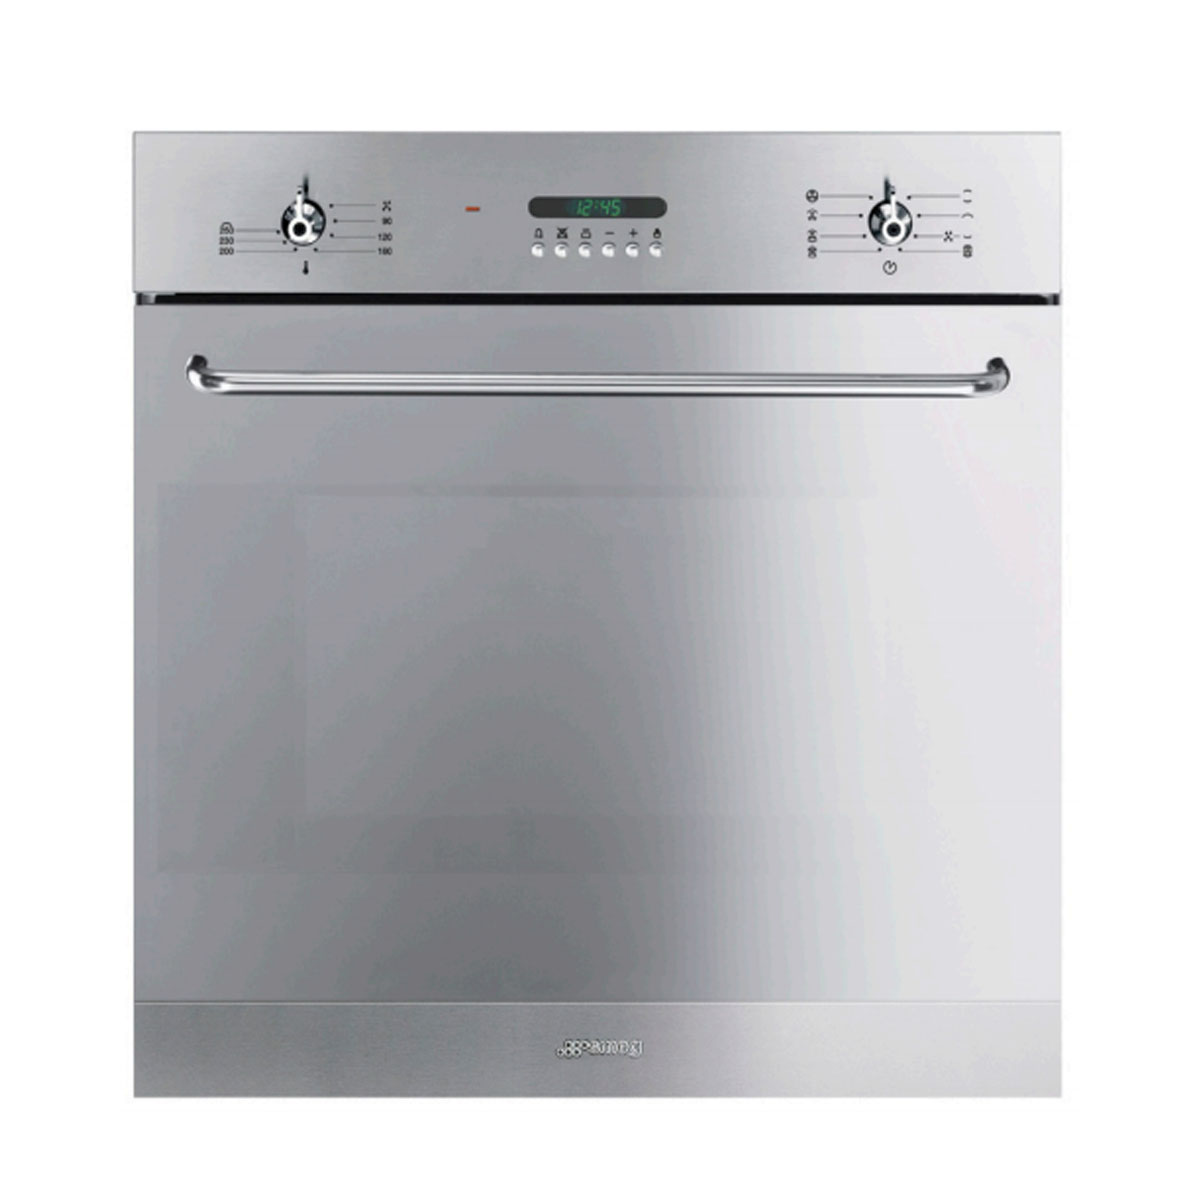 Smeg 60cm Classic Thermoseal Multifunction Electric Oven SAP578X-9 33175